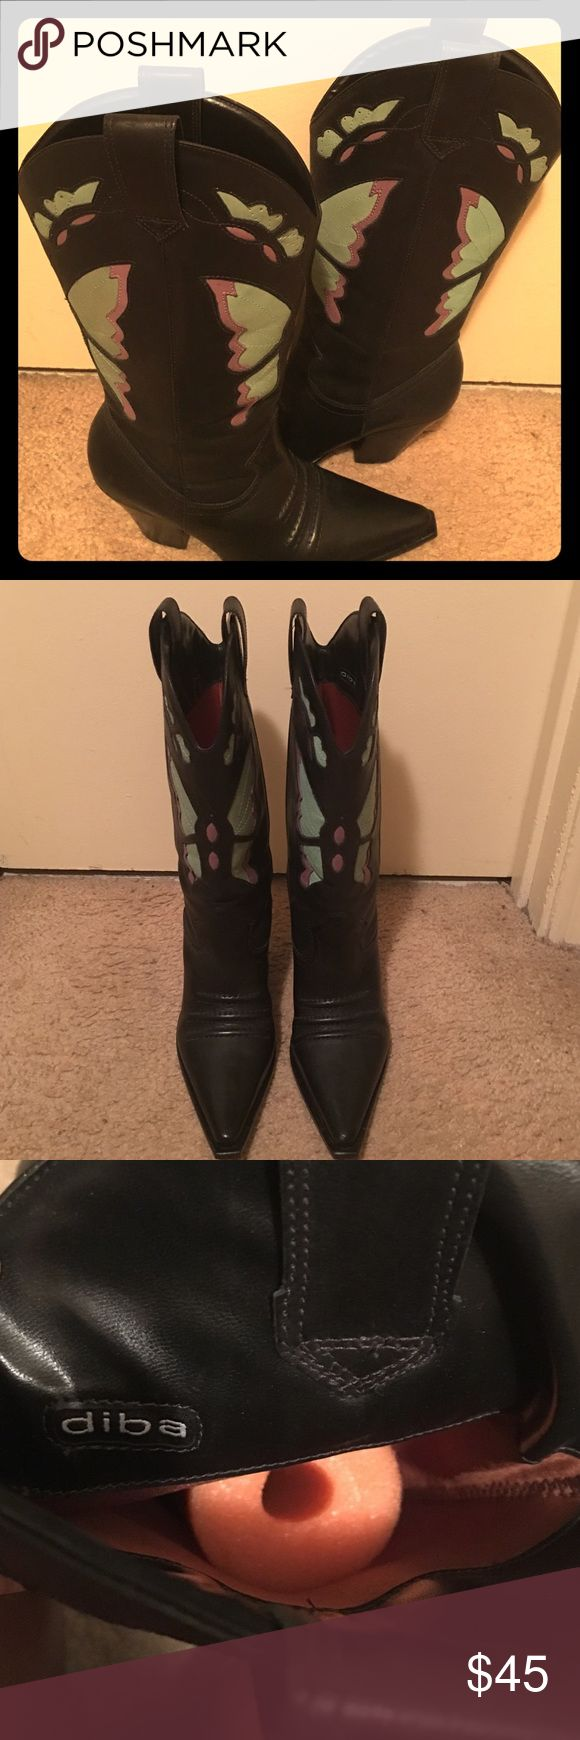 Cowboy boots 👢👢 Beautiful Diba Black leather boots w/ green and purple butterflies 🦋 on them. Worn once Diba Shoes Heeled Boots